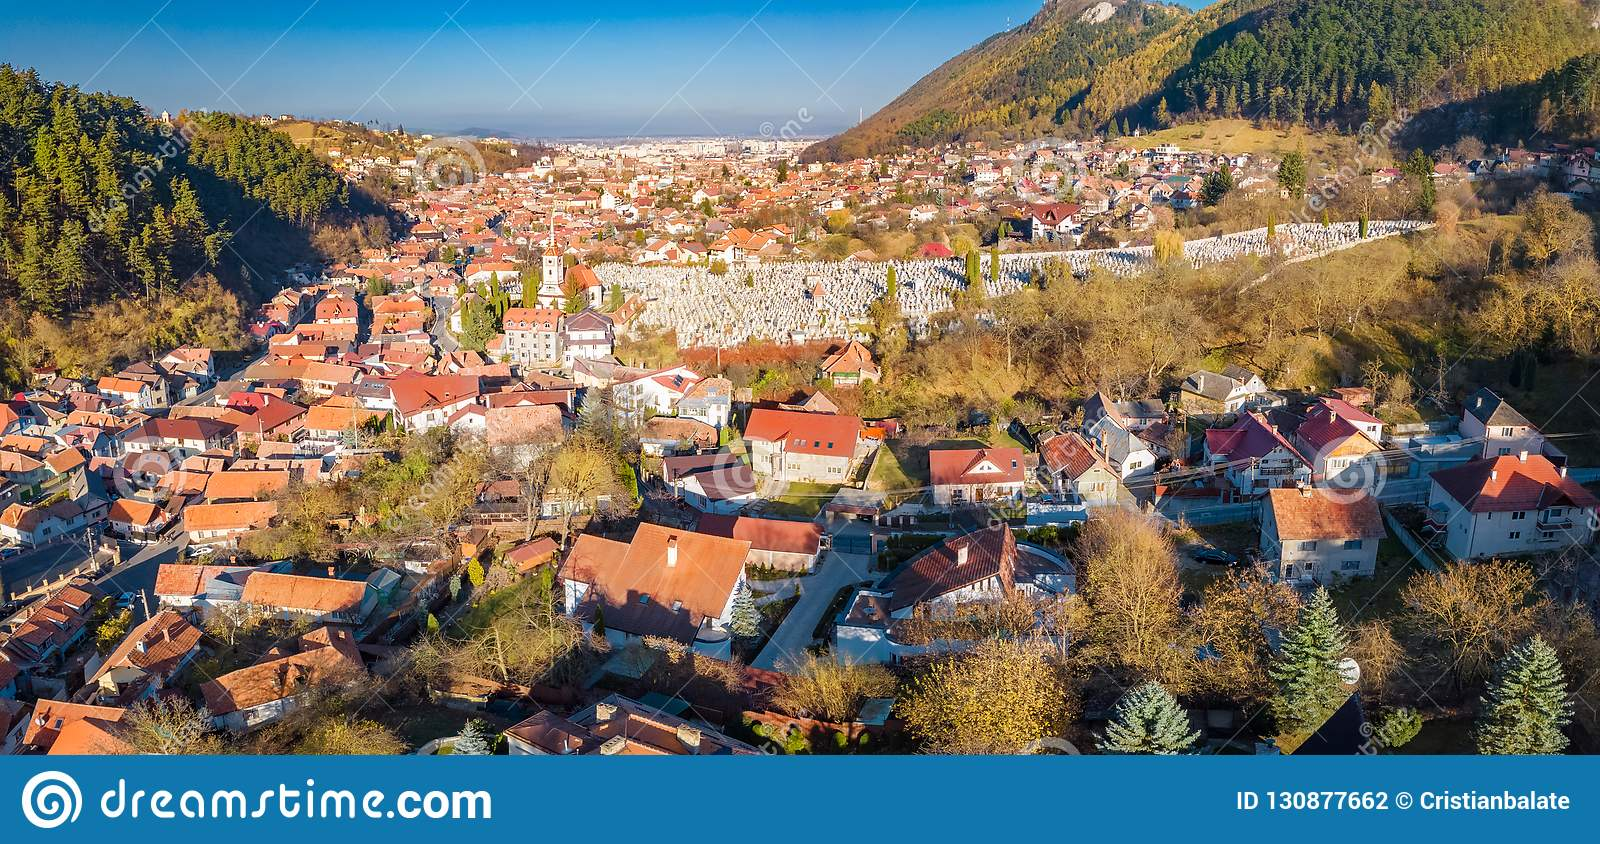 Aerial view of Brasov city